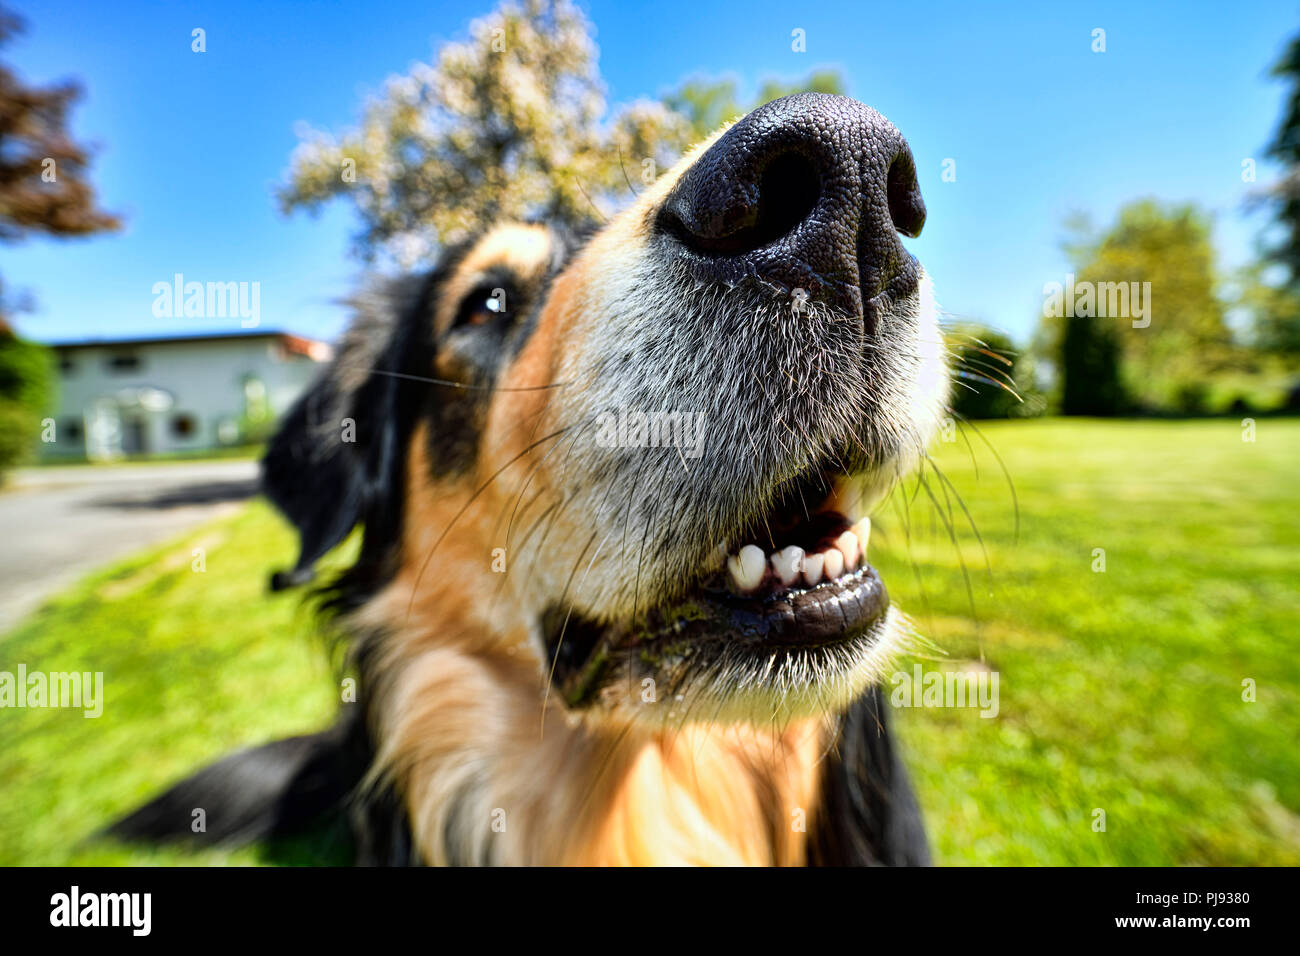 Dog nose of an American-Collie-Retriever-Mischlings, Hundenase eines American-Collie-Retriever-Mischlings - Stock Image